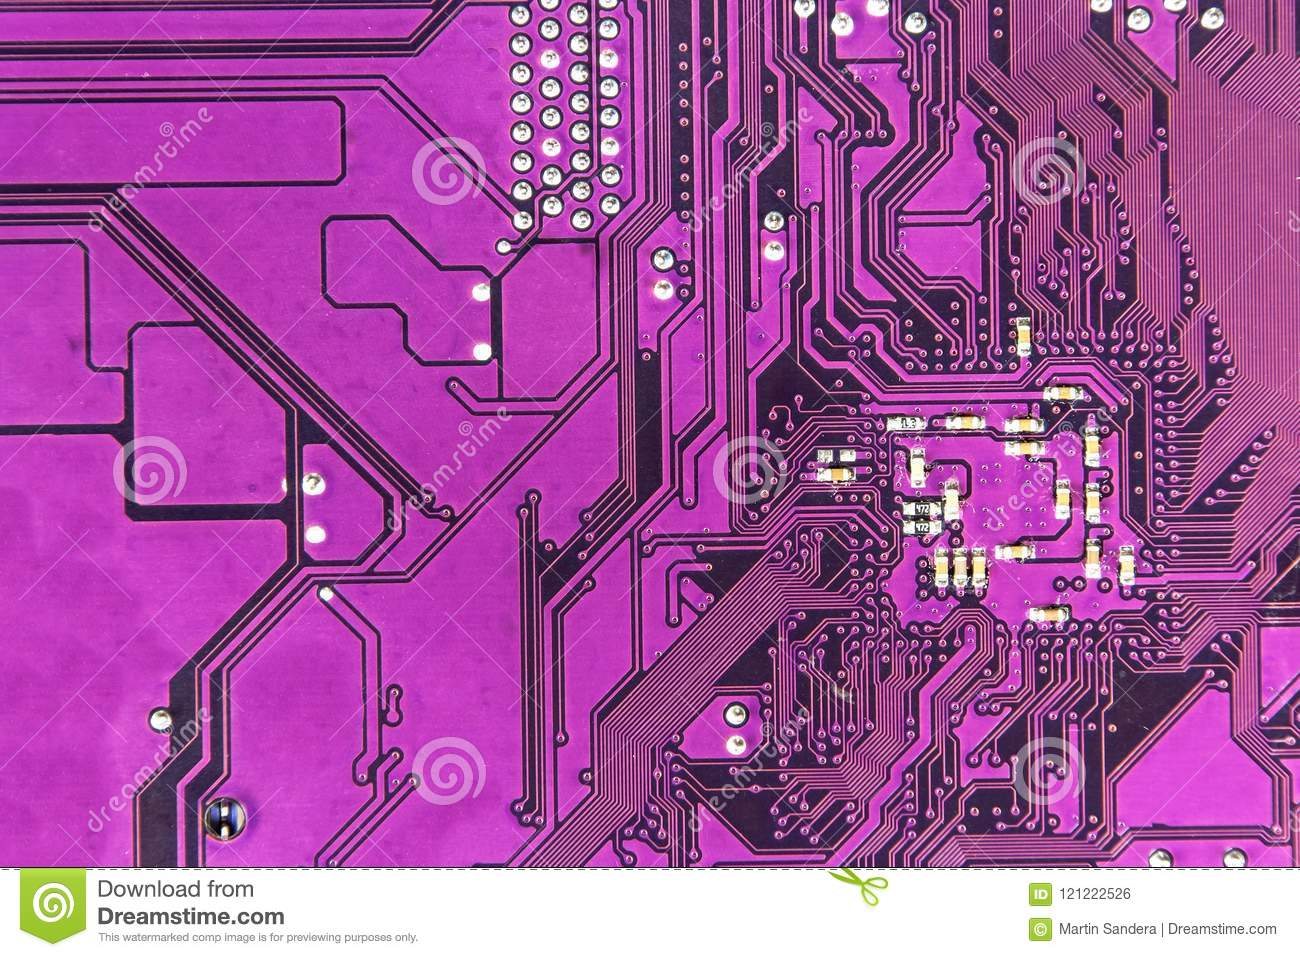 Violet Circuit Board Background Of Computer Motherboardcomputer Textures Pinterest Chip Electronics Motherboard High Tech Texture And